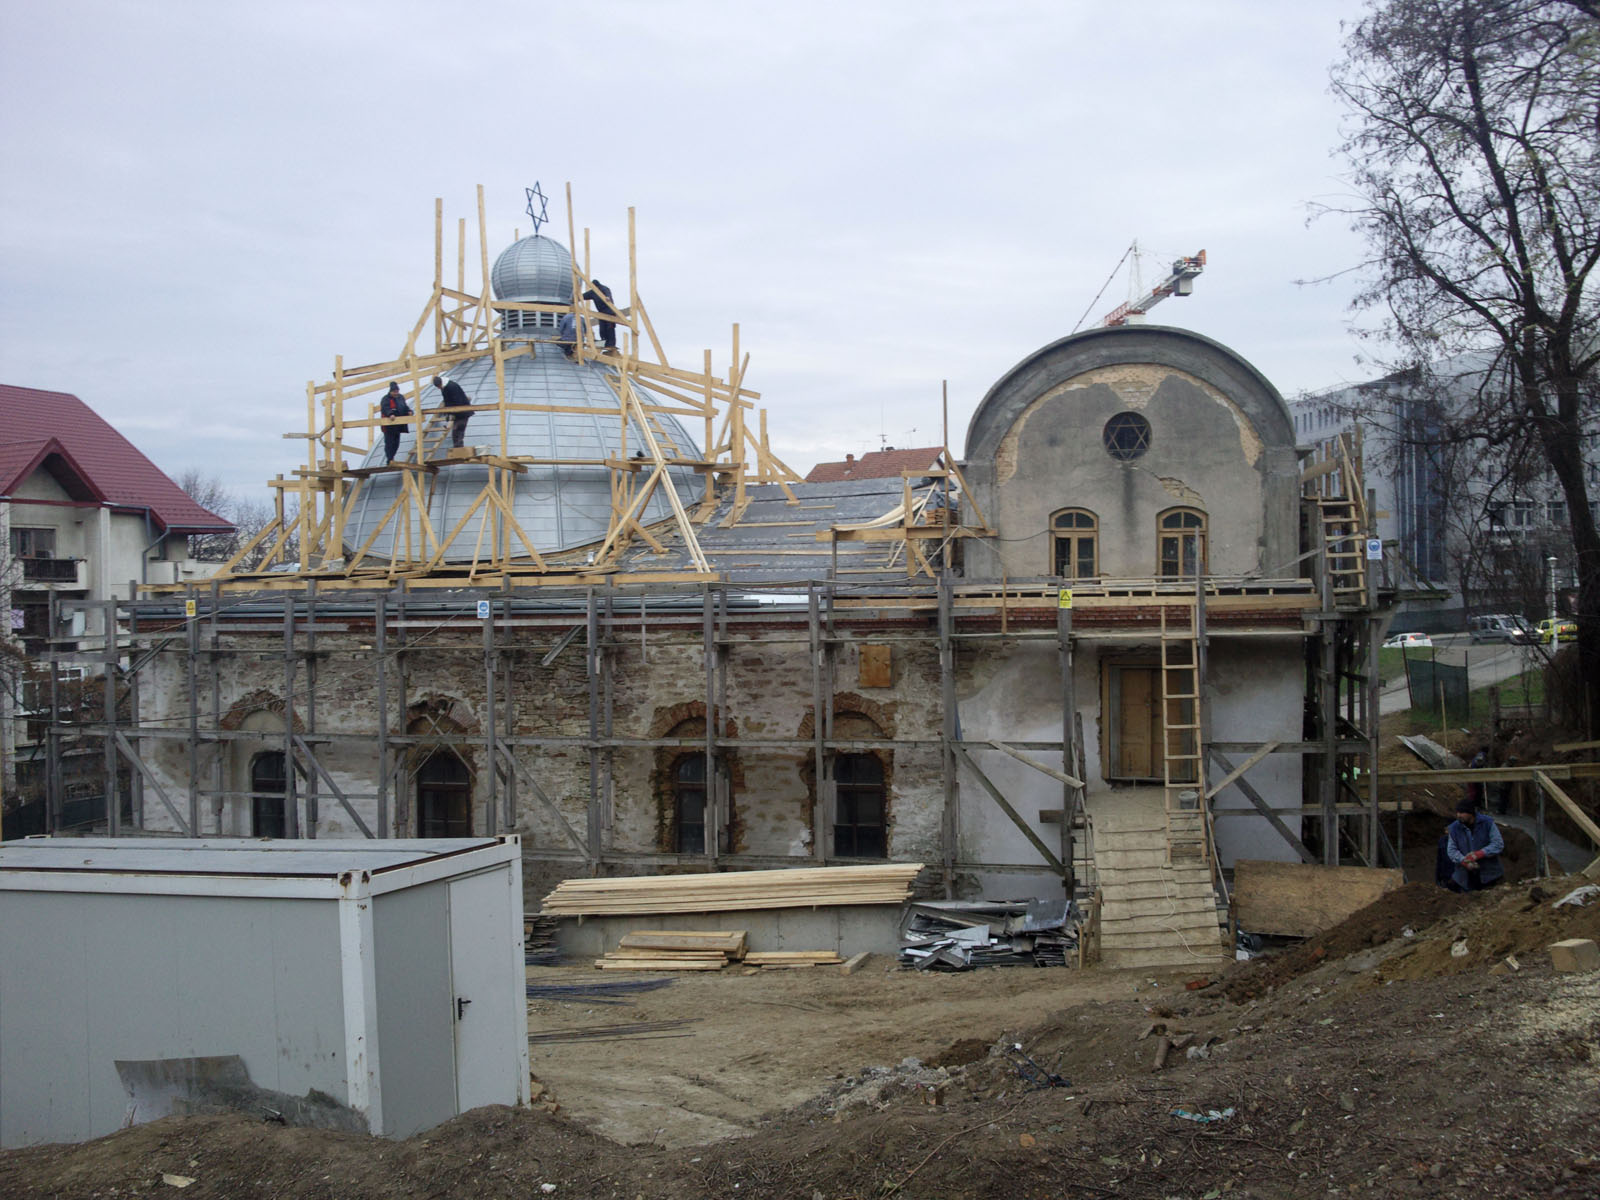 Country: RomaniaSite: Great Synagogue of IașiCaption: Conservation work in progress Image Date: January 2, 2014Photographer: Lucia Apostol/World Monuments FundProvenance: Progress imagesOriginal: email from Sarah Sher